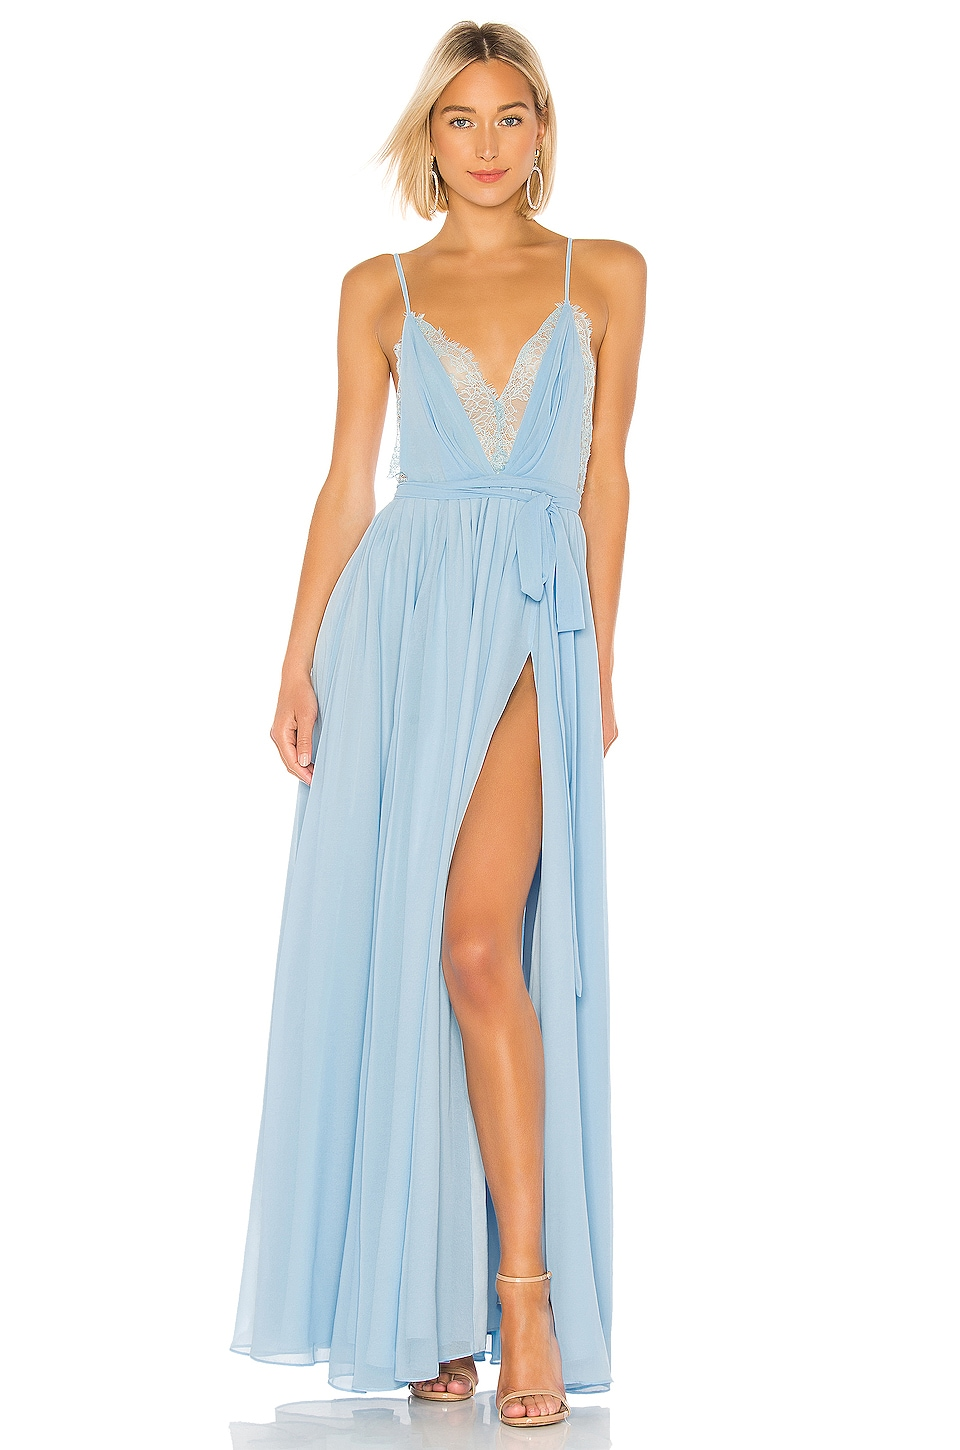 Michael Costello x REVOLVE Justin Gown in Light Blue